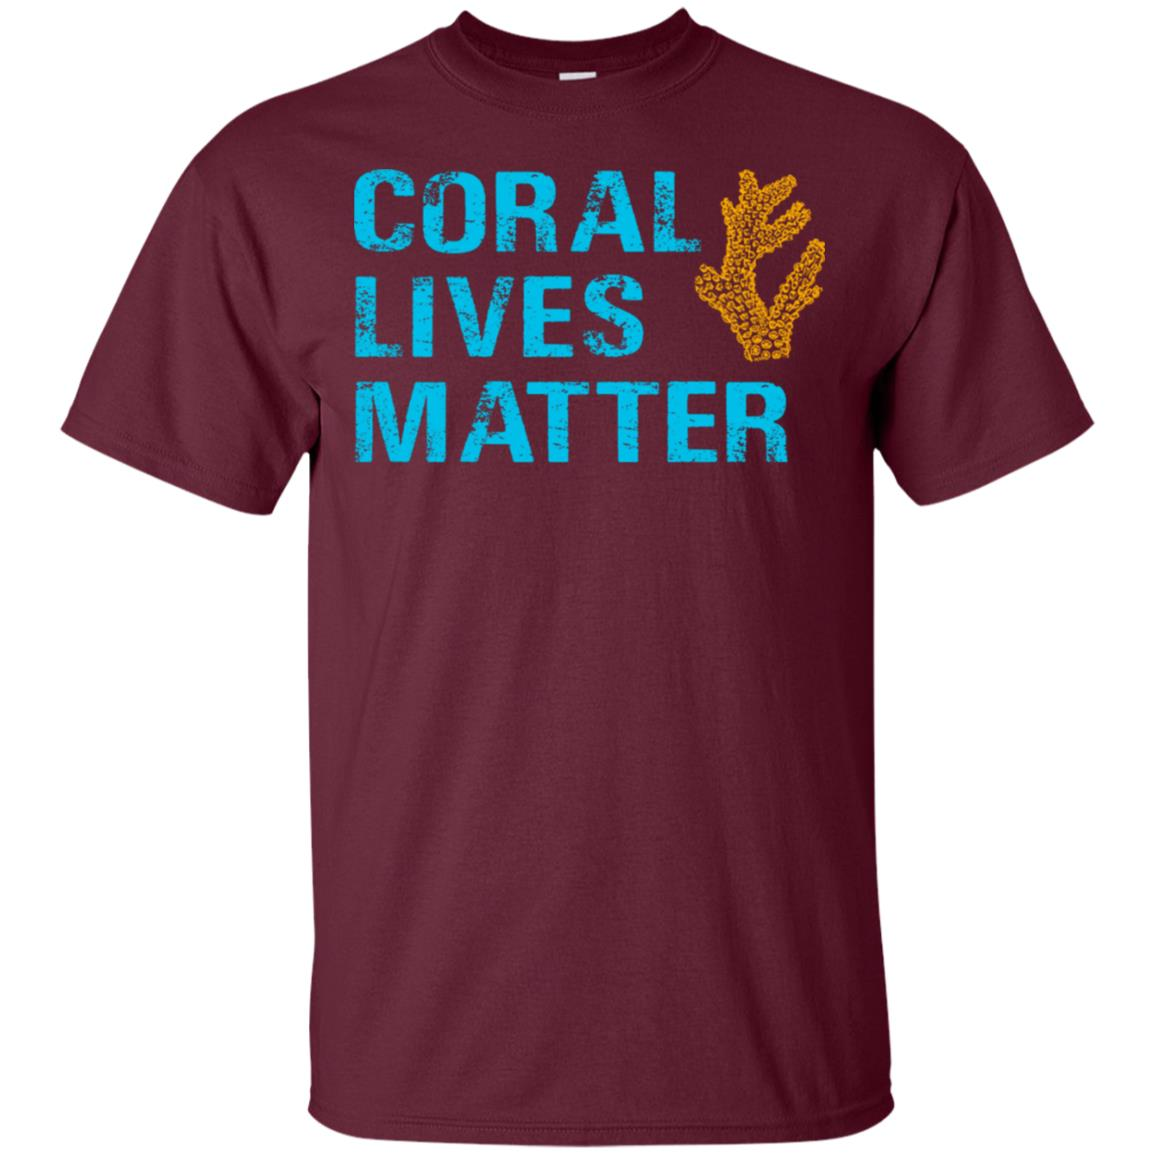 Coral Lives Matter Saltwater Aquarium Unisex Short Sleeve